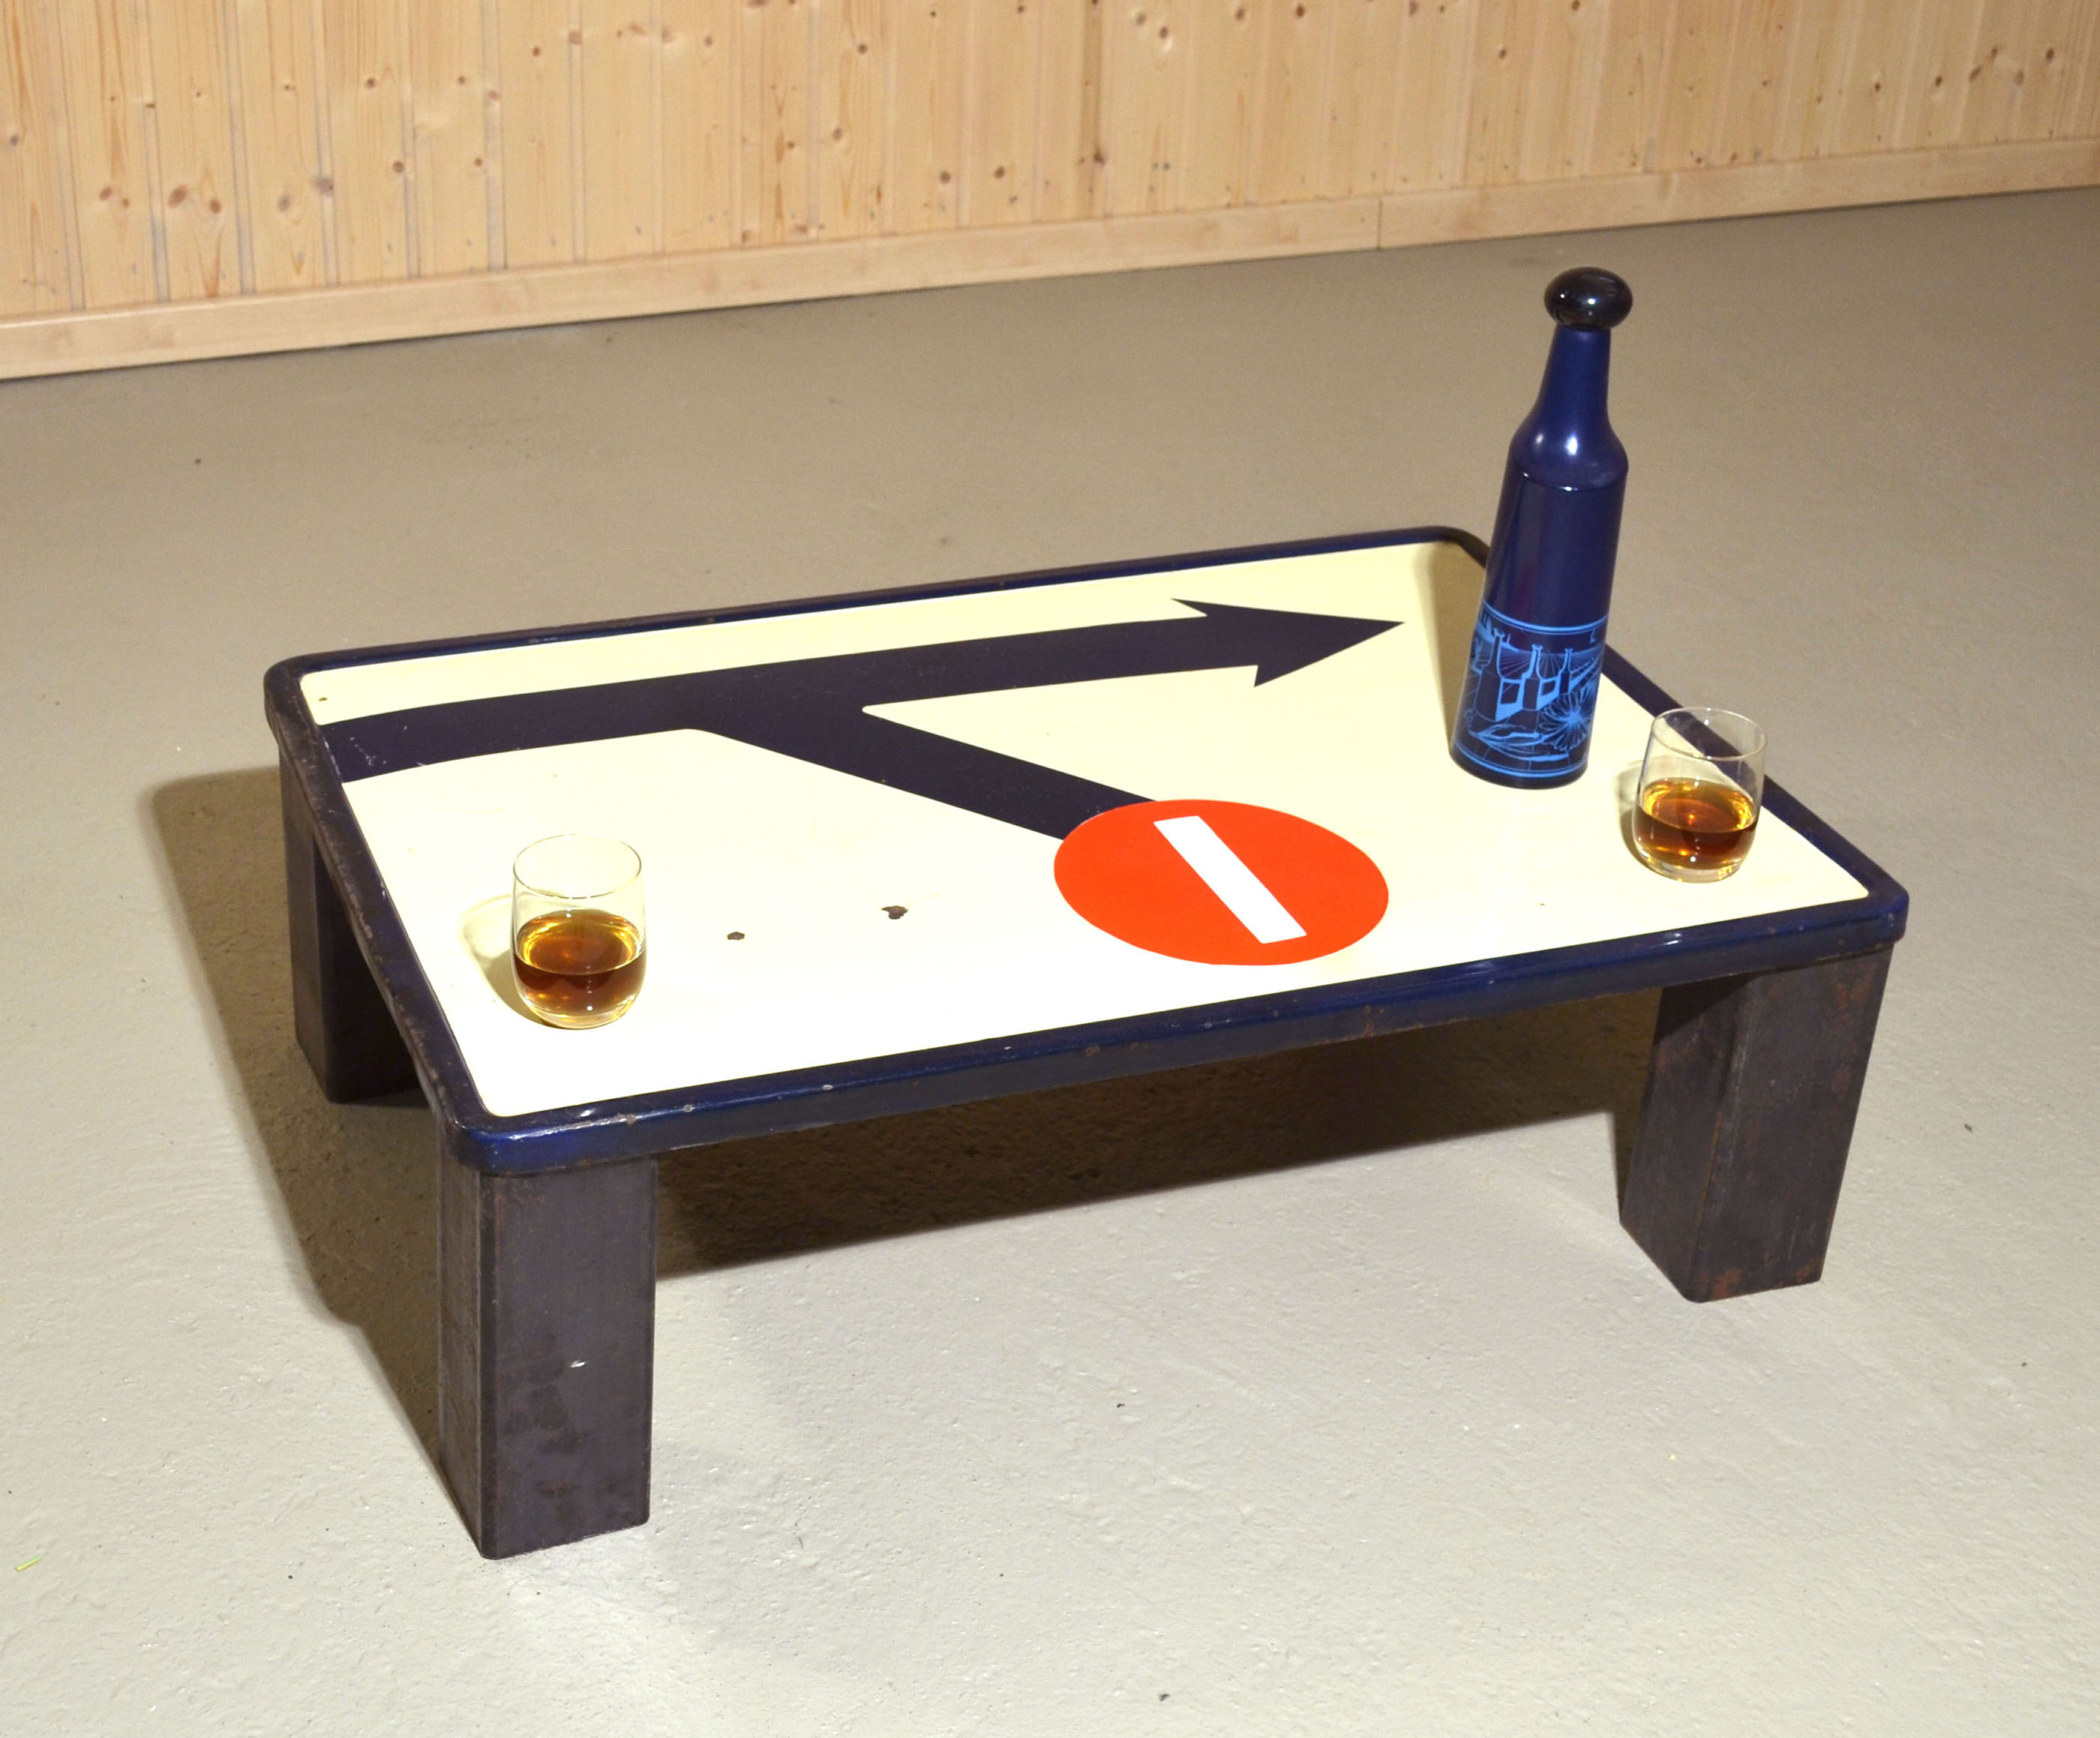 Quelques liens utiles - Idee table basse recup ...